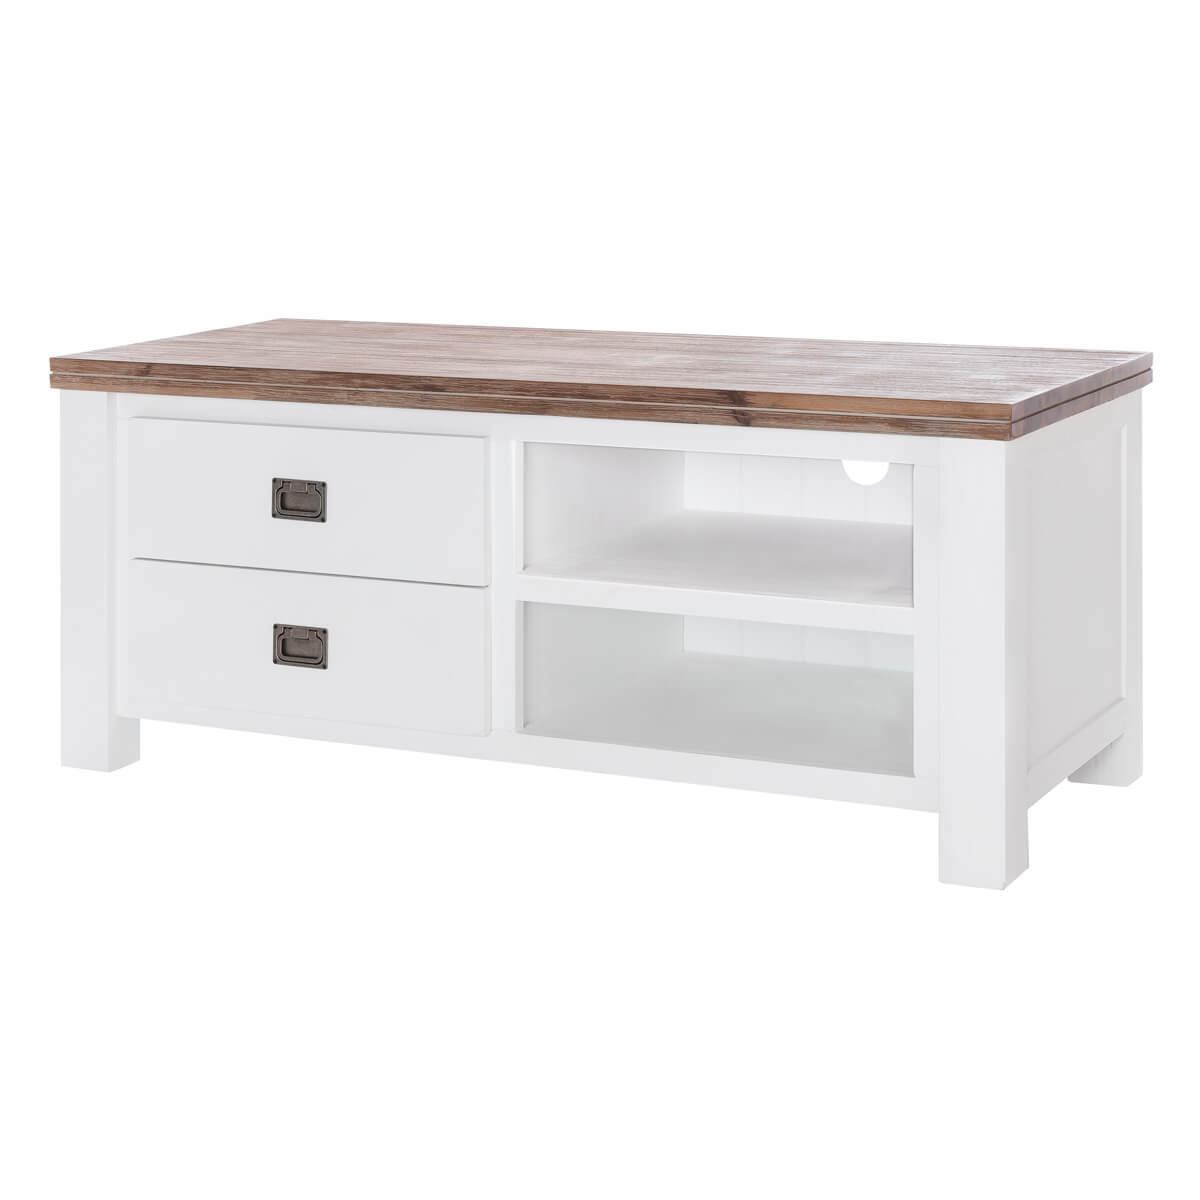 Möbel Landhausstil Massiv Tv Lowboard Lyron In Akazie Massiv Weiß Braun 120 Cm